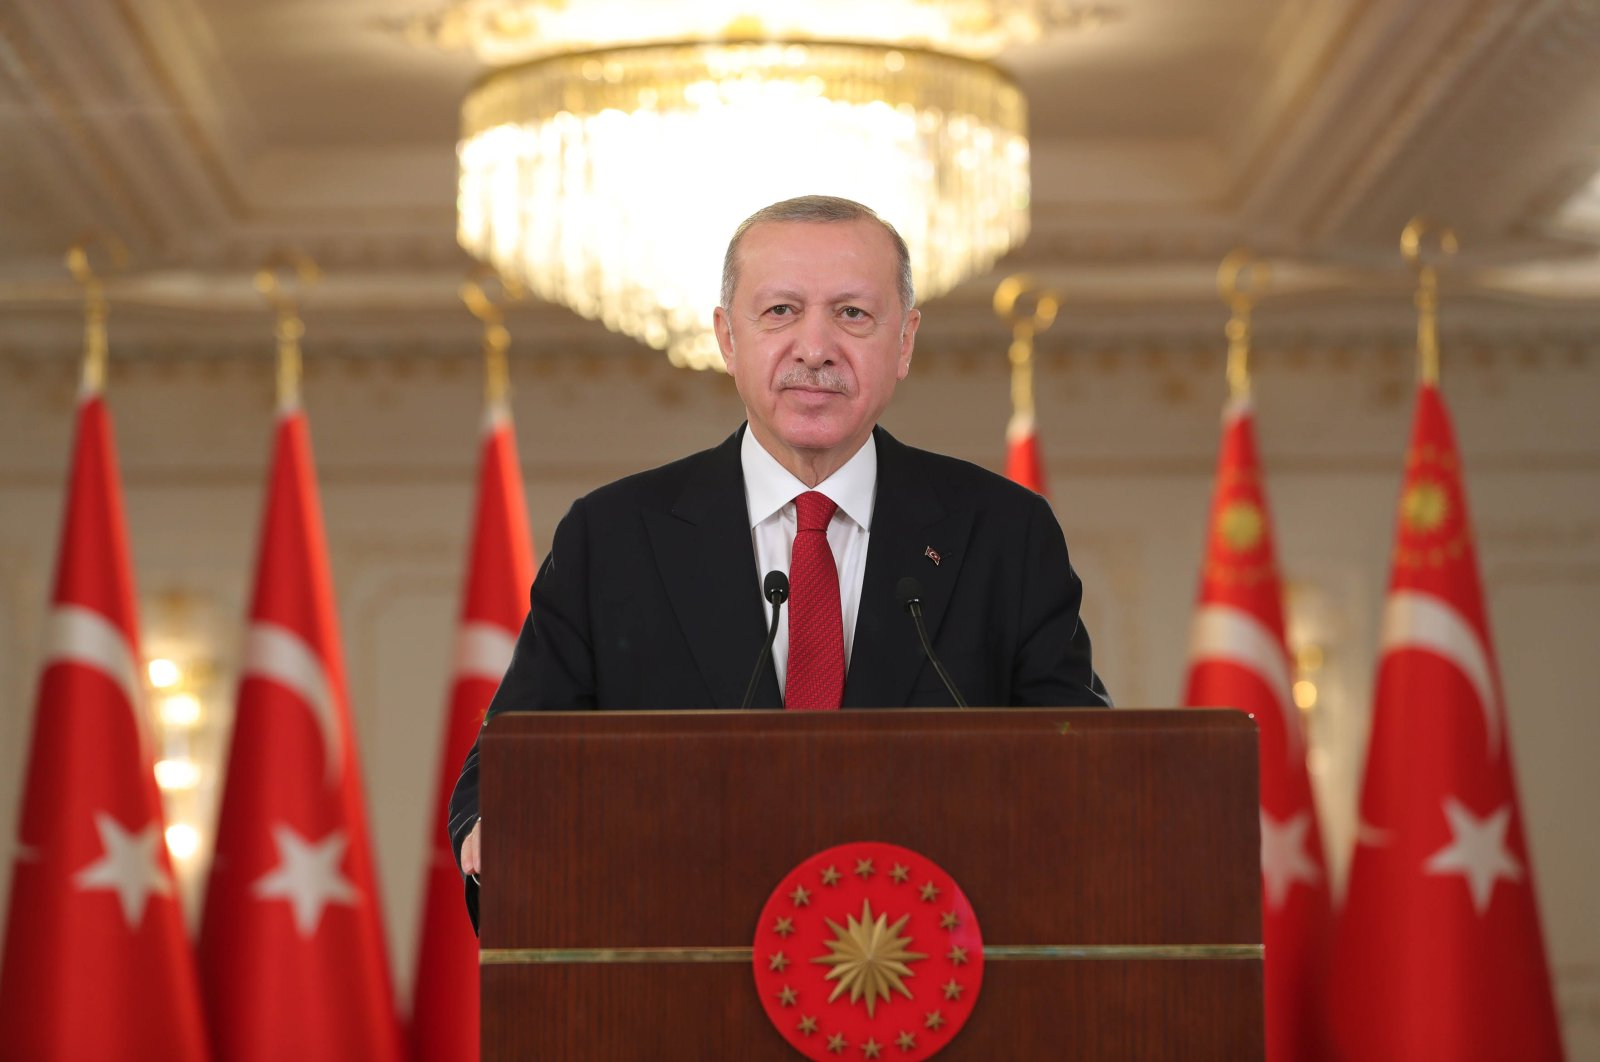 President Recep Tayyip Erdoğan attends the Blue Homeland 2021 tactical exercise via video link, March 6, 2021. (DHA Photo)